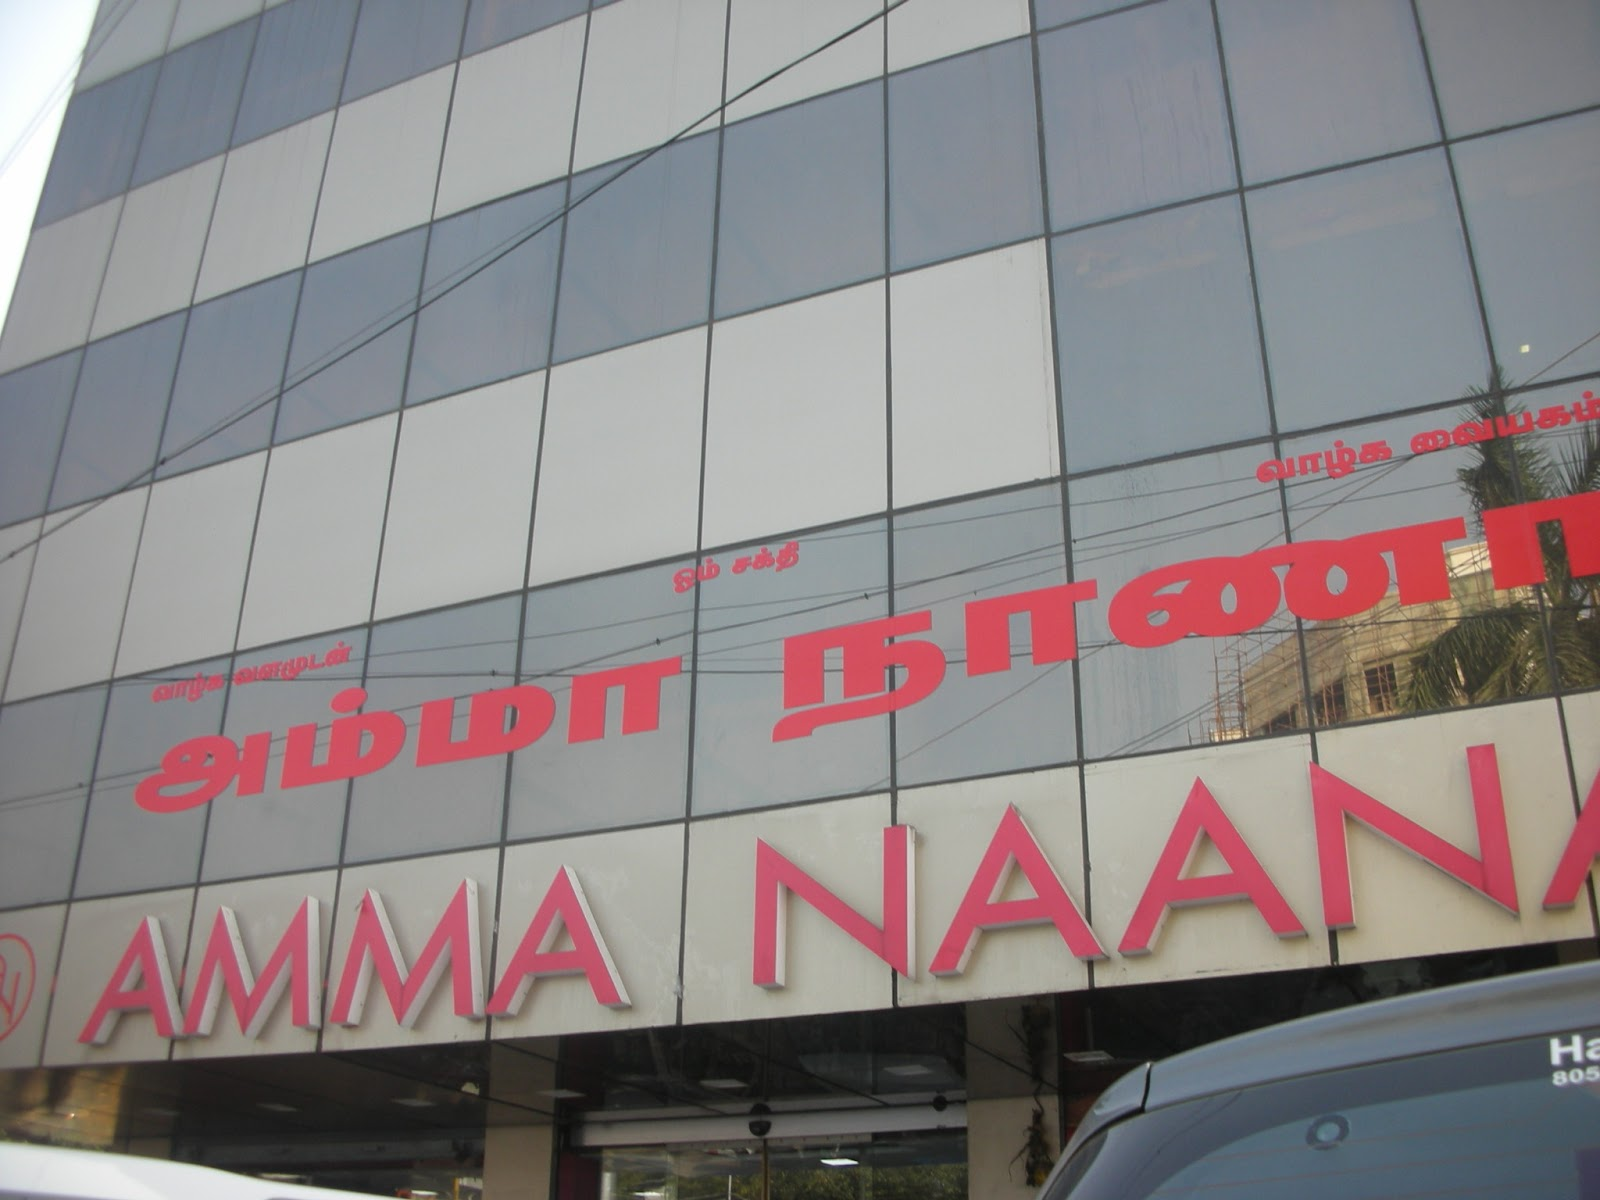 Nice place to shop imported Chocolate items - AMMA NAANA SUPERMARKET